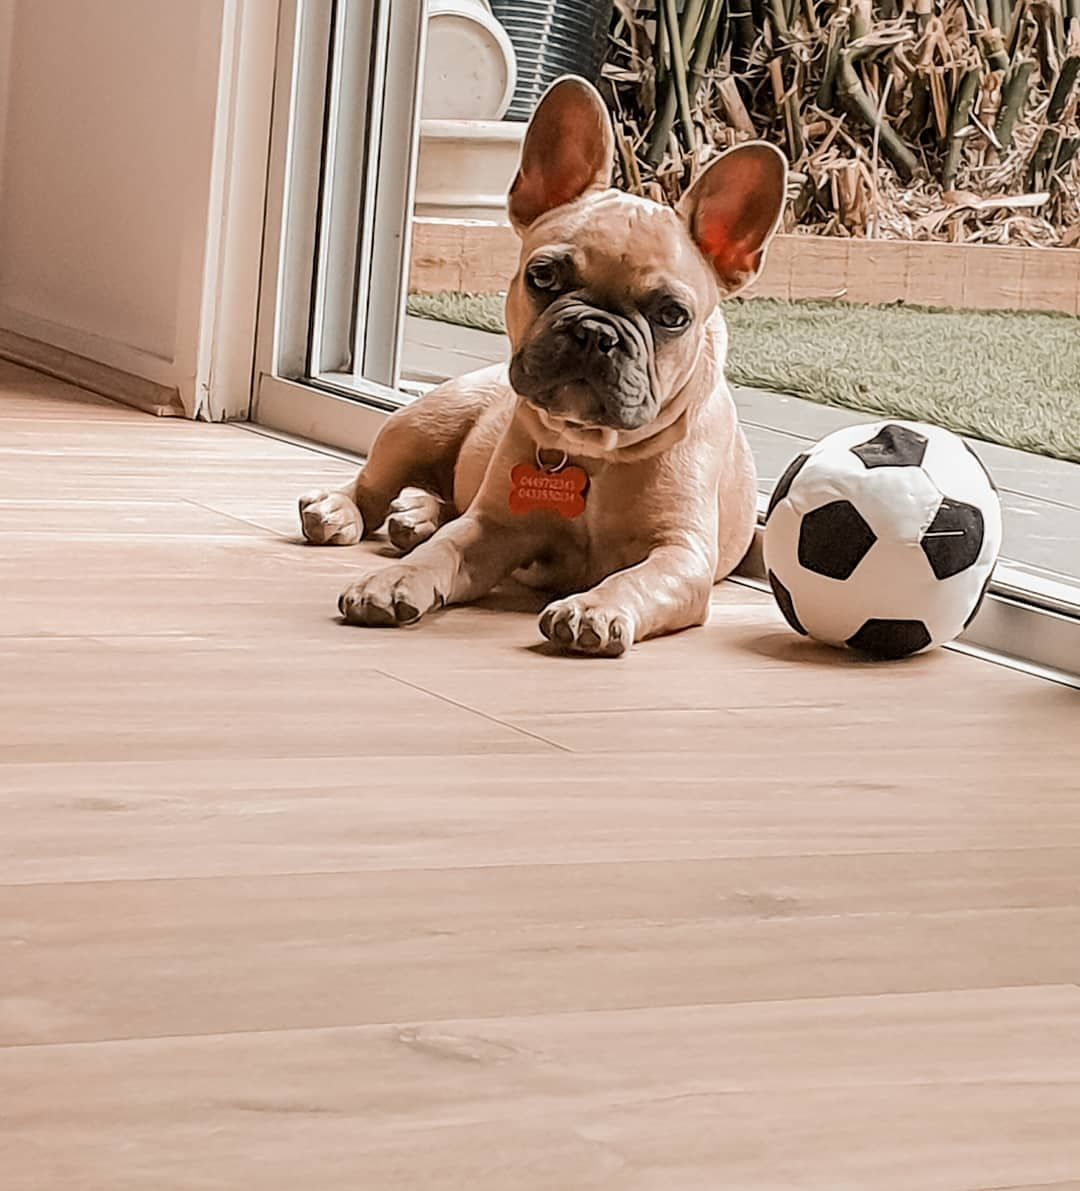 Soccer Dog Frenchiesofinstagram Frenchbulldoglife Frenchie